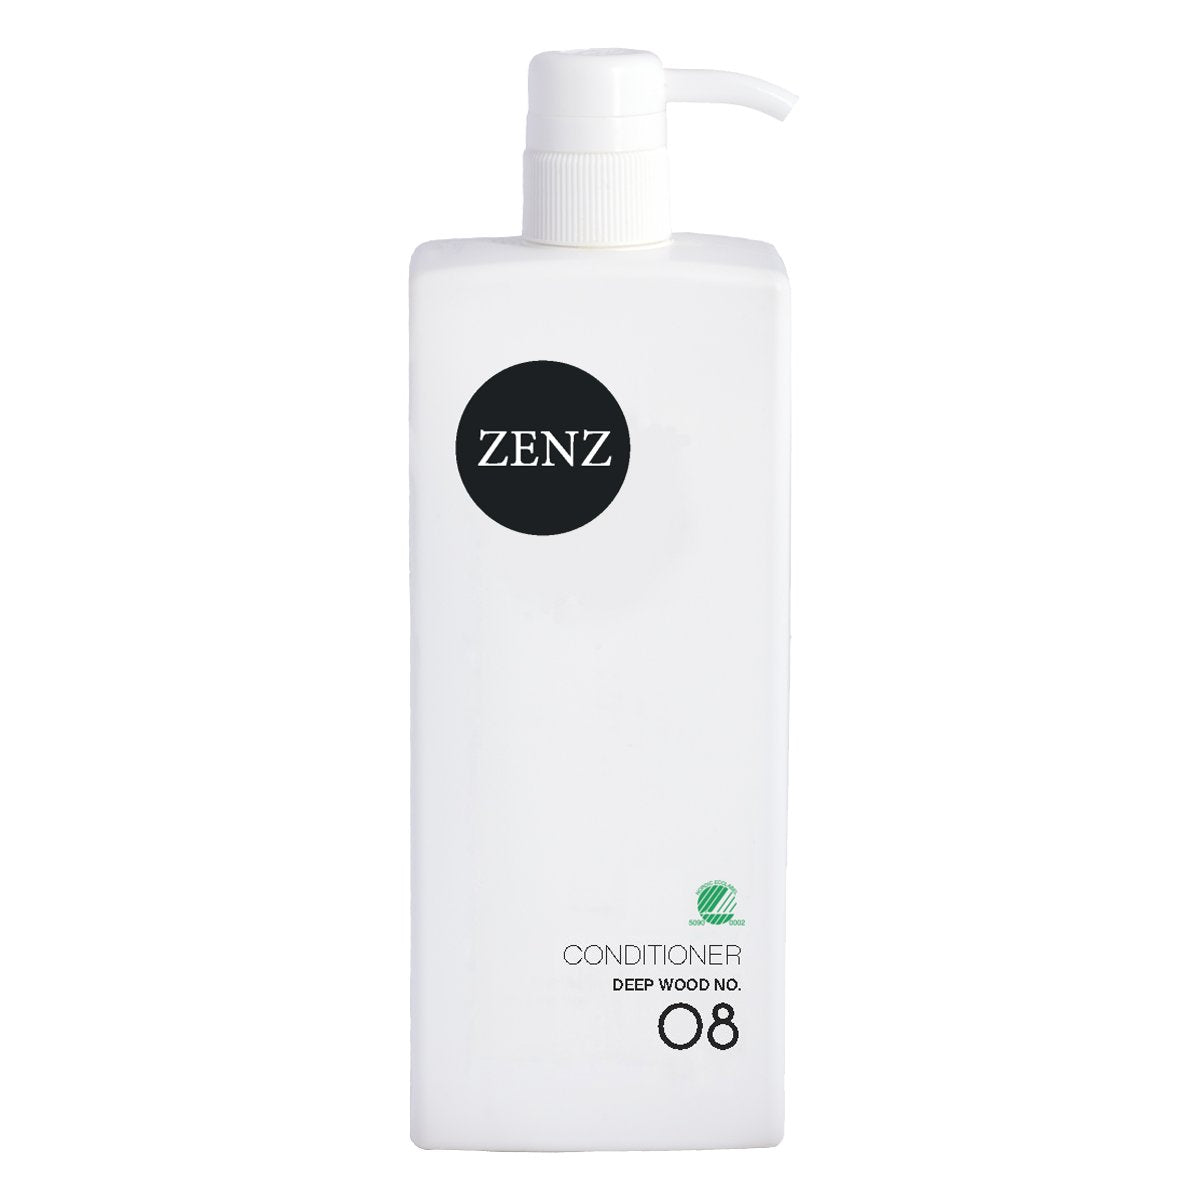 Zenz No.08 Deep Wood Conditioner for Dry / Damaged Hair 785mL